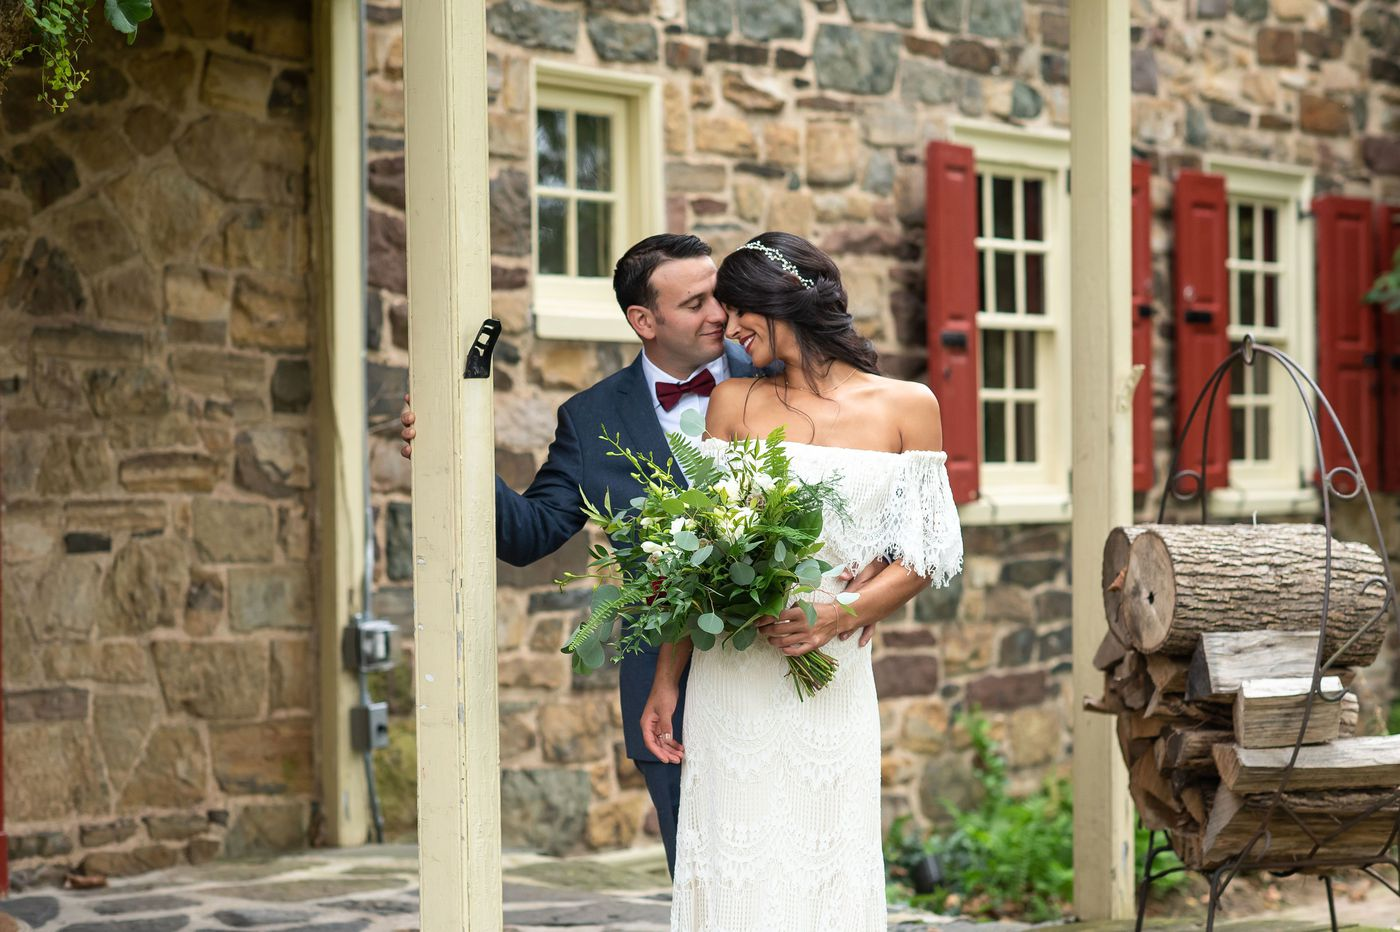 Philadelphia weddings: Kristina Kazanjian and Adam Belcastro